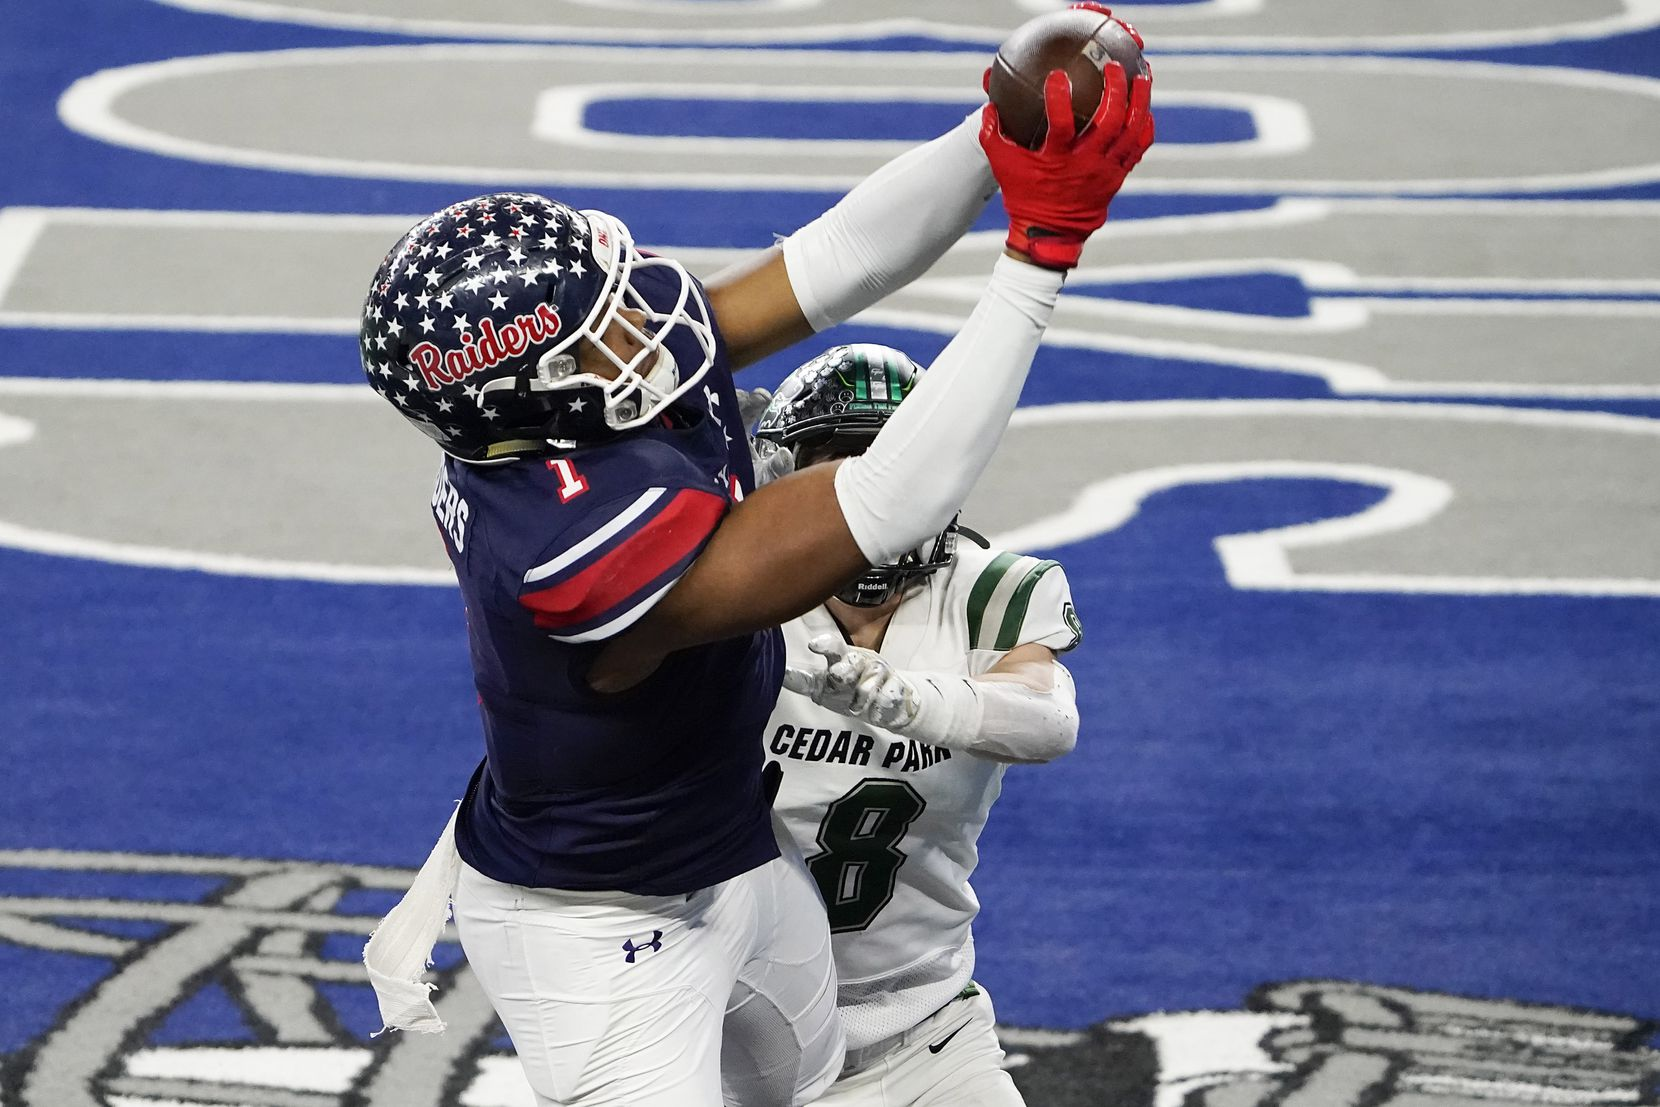 Denton Ryan wide receiver Ja'Tavion Sanders (1) catches a touchdown pass from quarterback Seth Henigan as Cedar Park defensive back Casyn Wiesenhutter (8) defends during the second half of the Class 5A Division I state football championship game at AT&T Stadium on Friday, Jan. 15, 2021, in Arlington, Texas. Ryan won the game 59-14. (Smiley N. Pool/The Dallas Morning News)